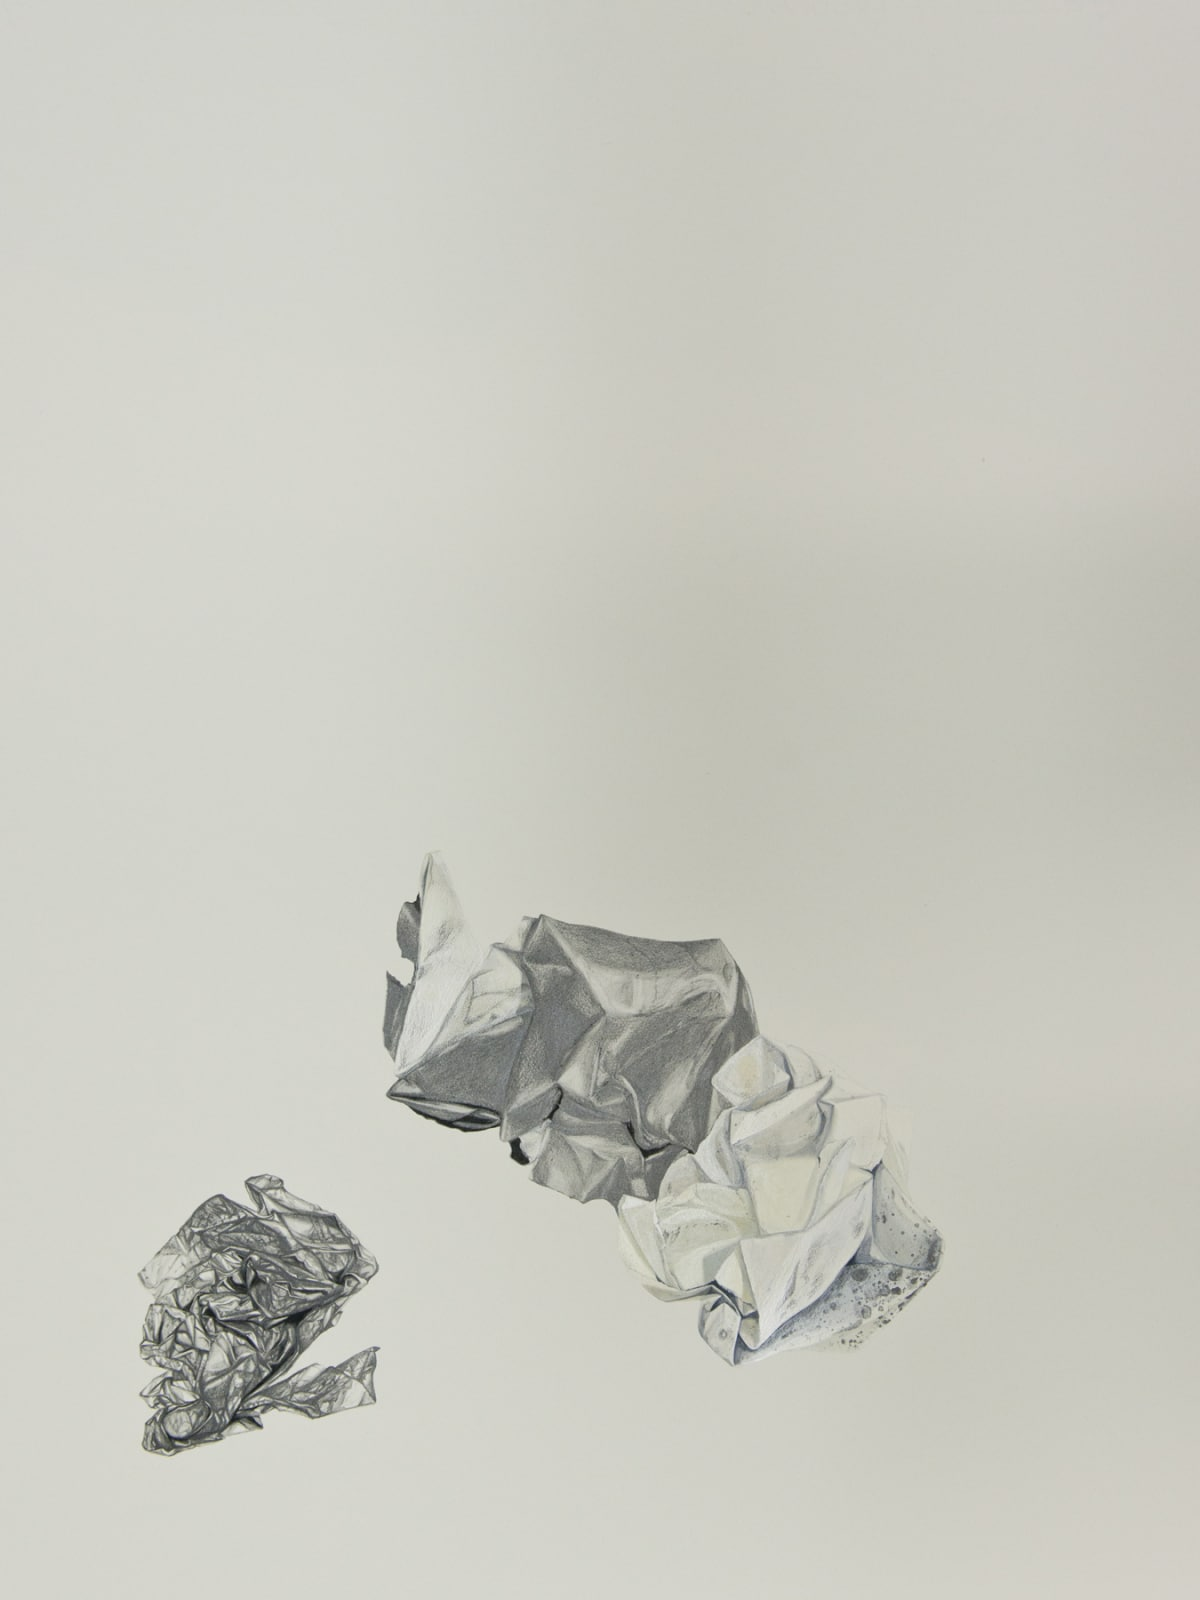 Marita Hewitt Waste Paper Series; Trials With Powdered Graphite, 2015 Watercolour and graphite on paper 34.3 x 26 in 87 x 66 cm